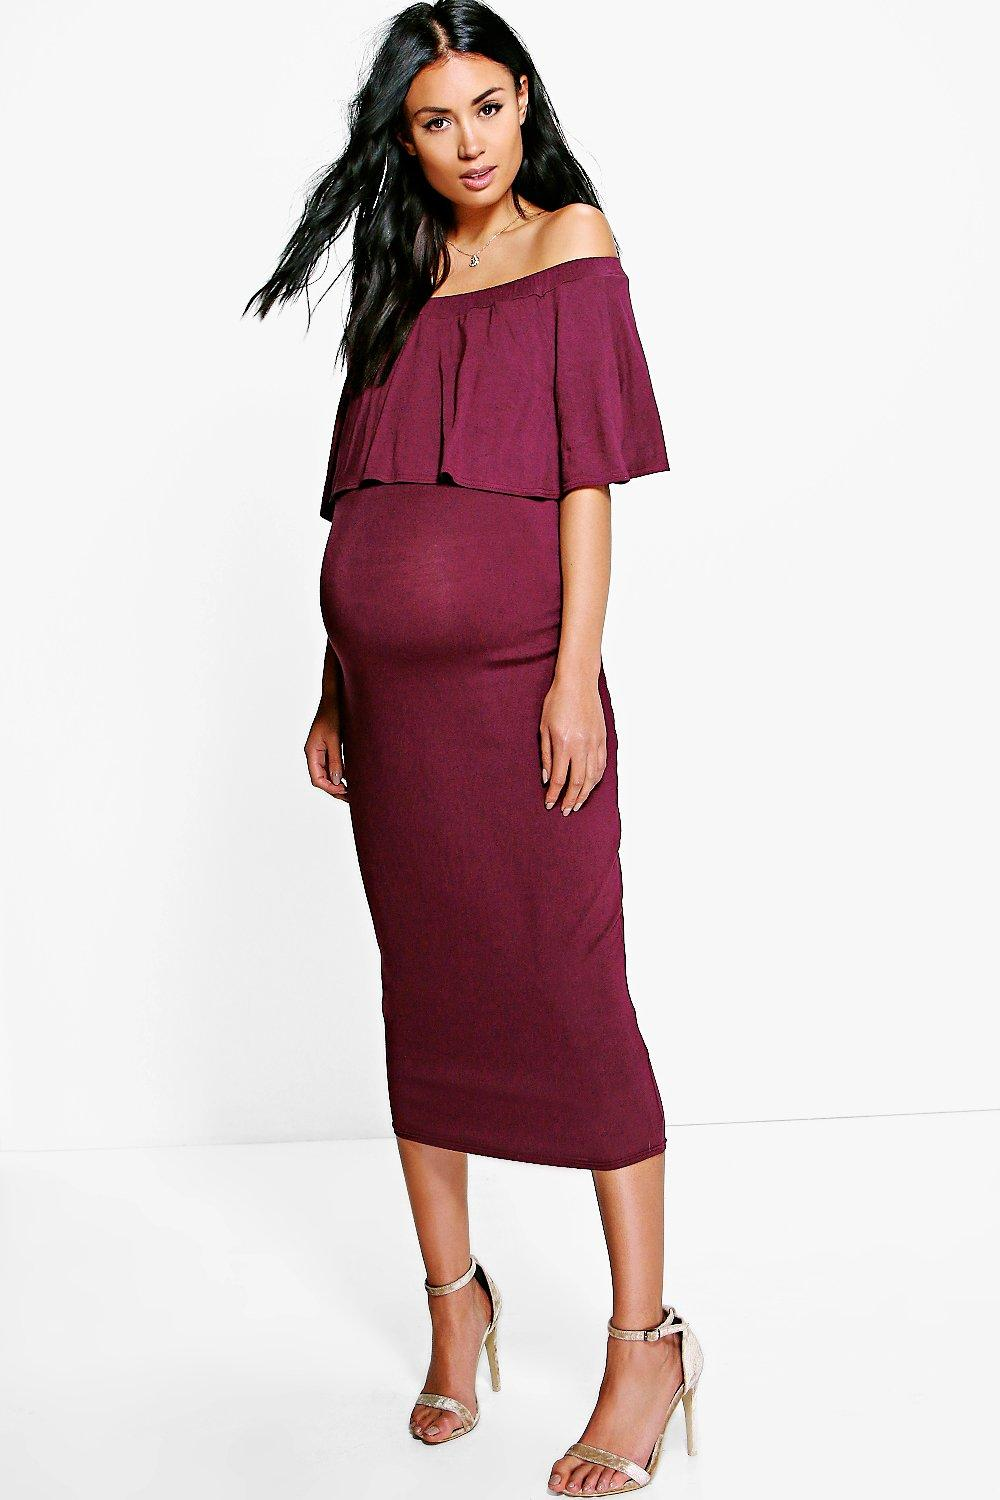 961995088565d Womens Berry Maternity Off The Shoulder Midi Dress. Hover to zoom